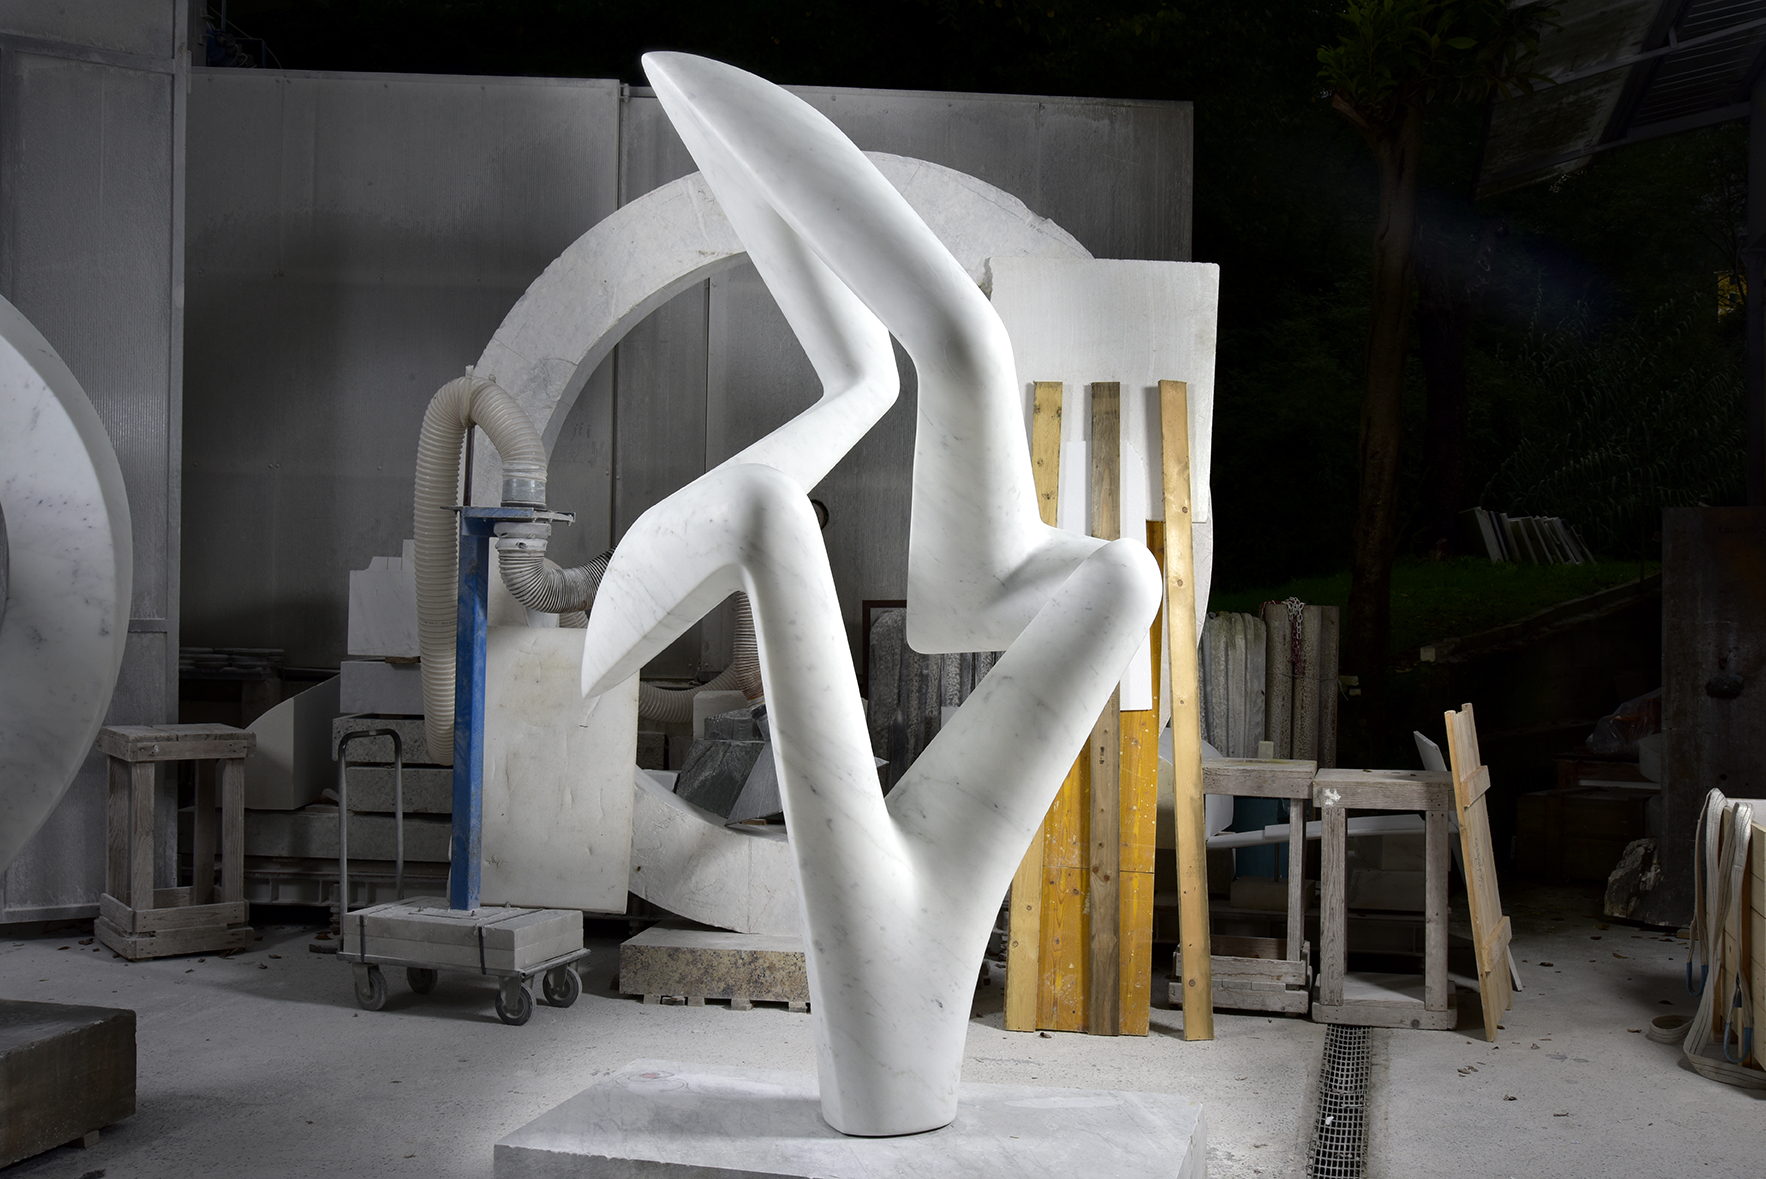 Arete, Carrara marble, 95 x 48 x 32 inches